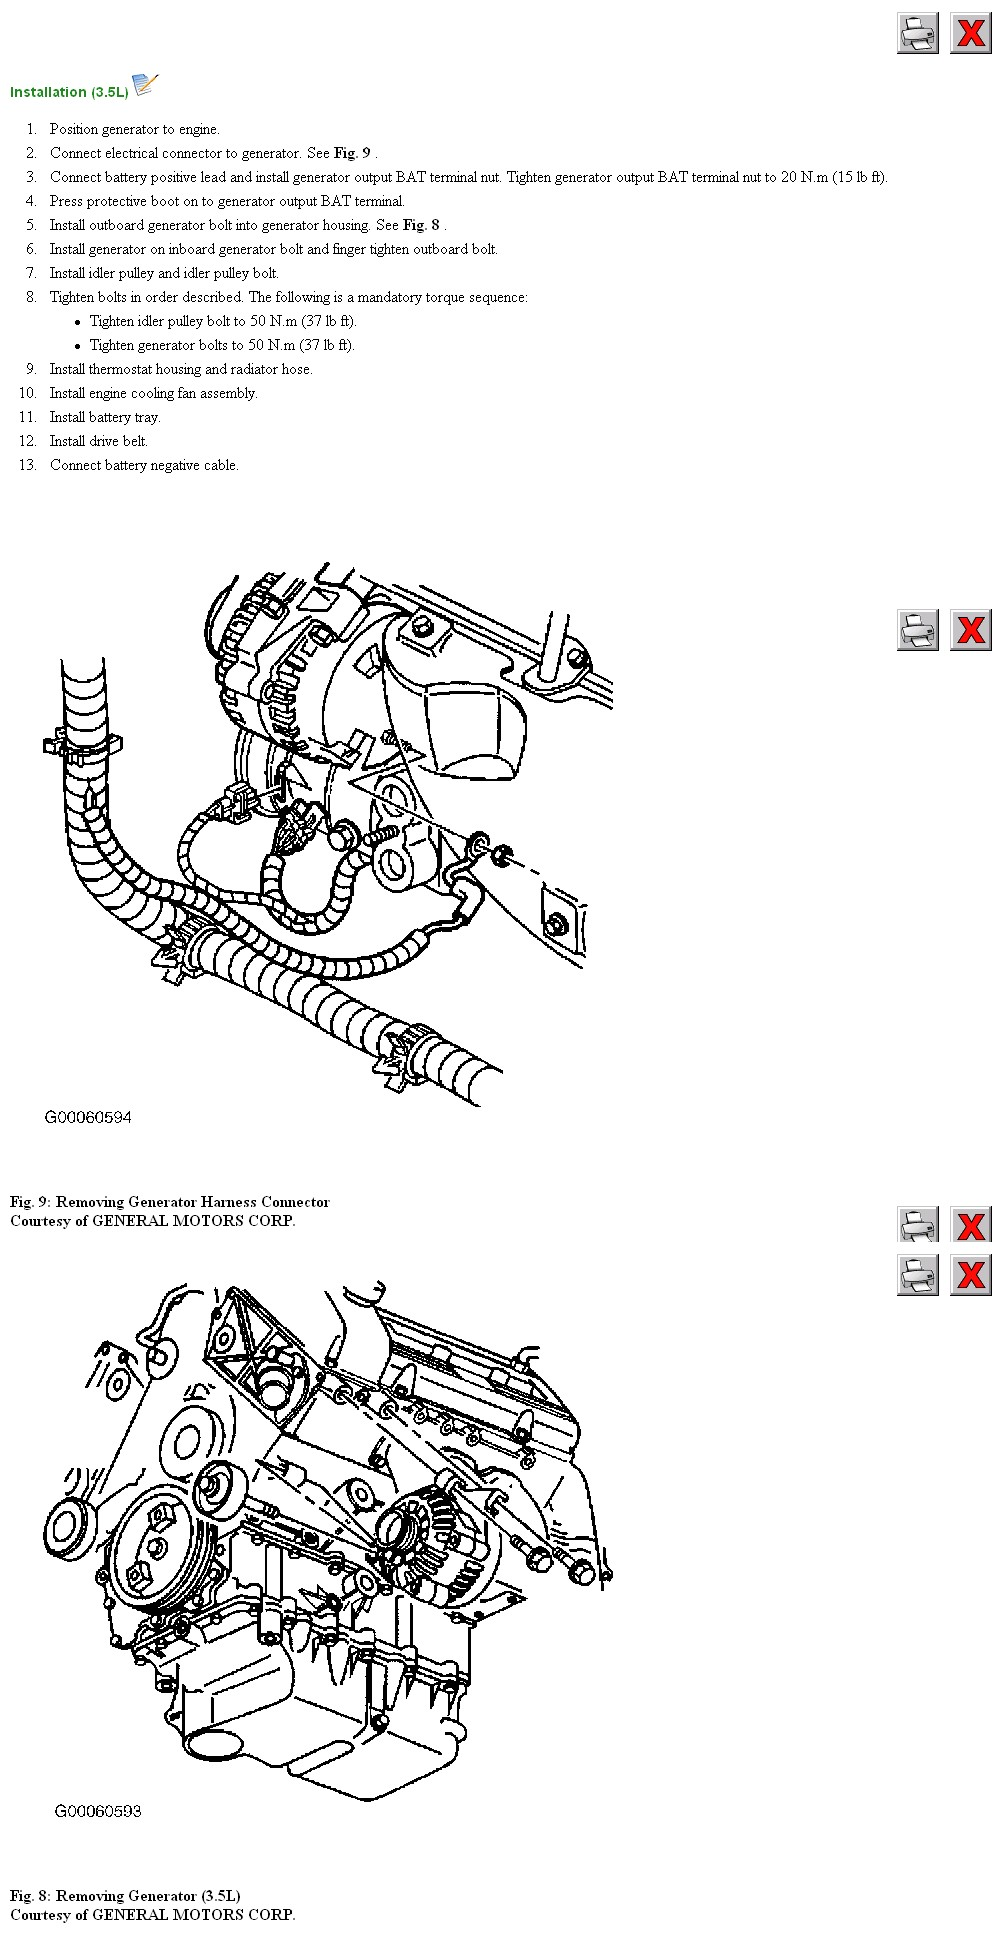 Alero Engine Diagram Everything About Wiring Oldsmobile 3 8 Valve Cover Pictures Library Rh 23 Codingcommunity De 2001 2003